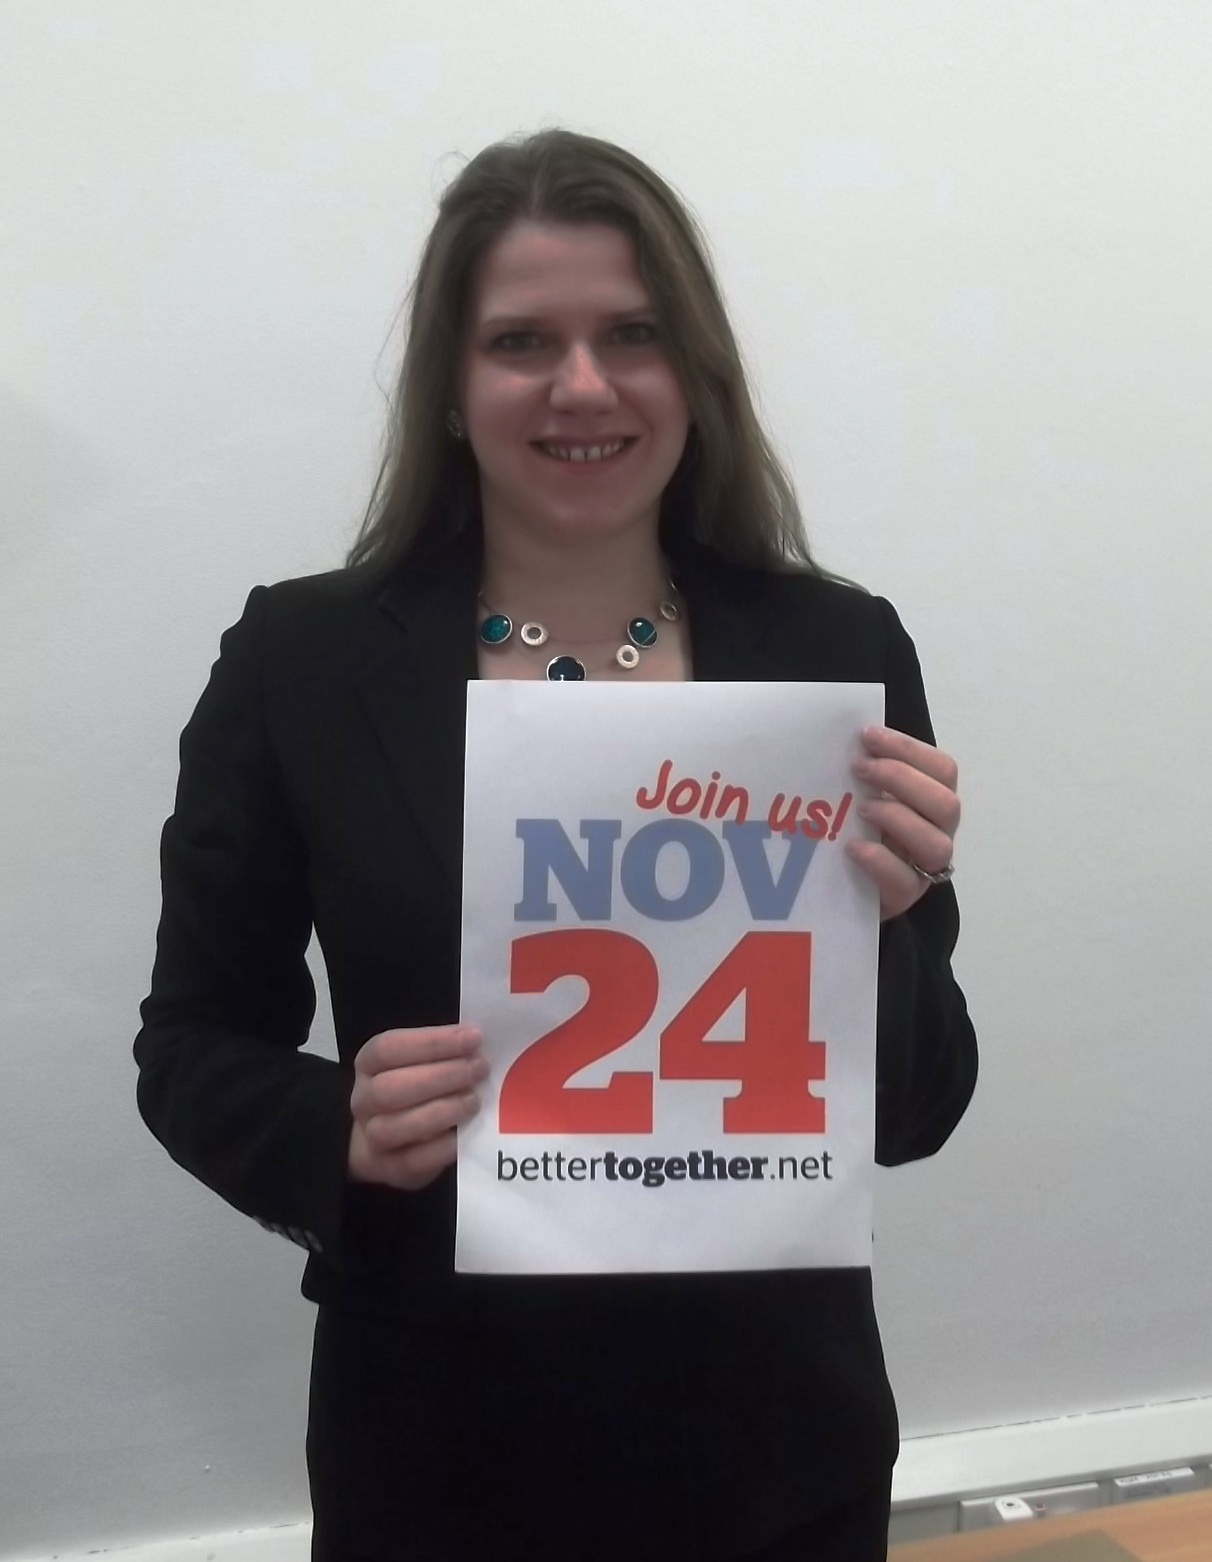 2012-11-16_Jo_Swinson_Better_Together.jpg